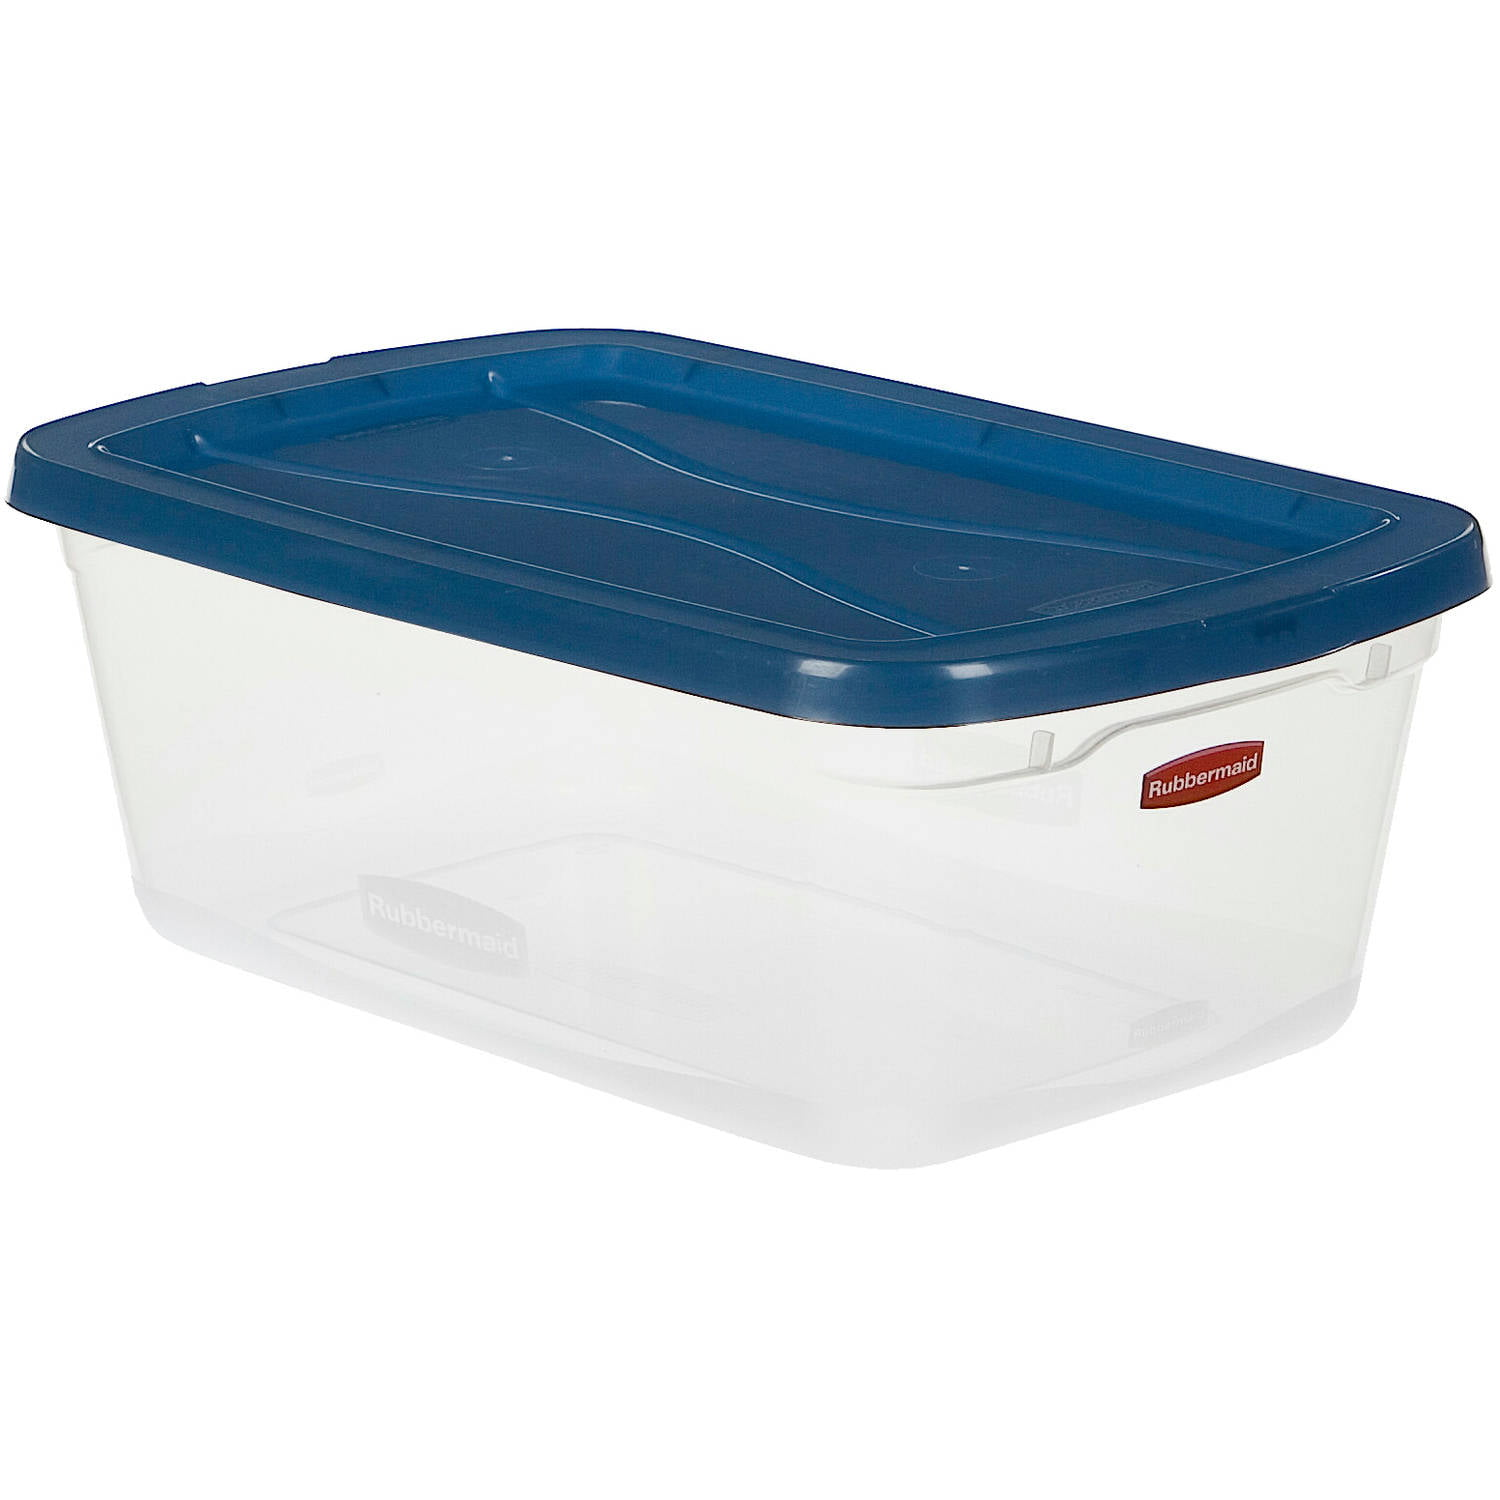 Rubbermaid Clever Store Clears Storage Container 65 qt 10 Pack